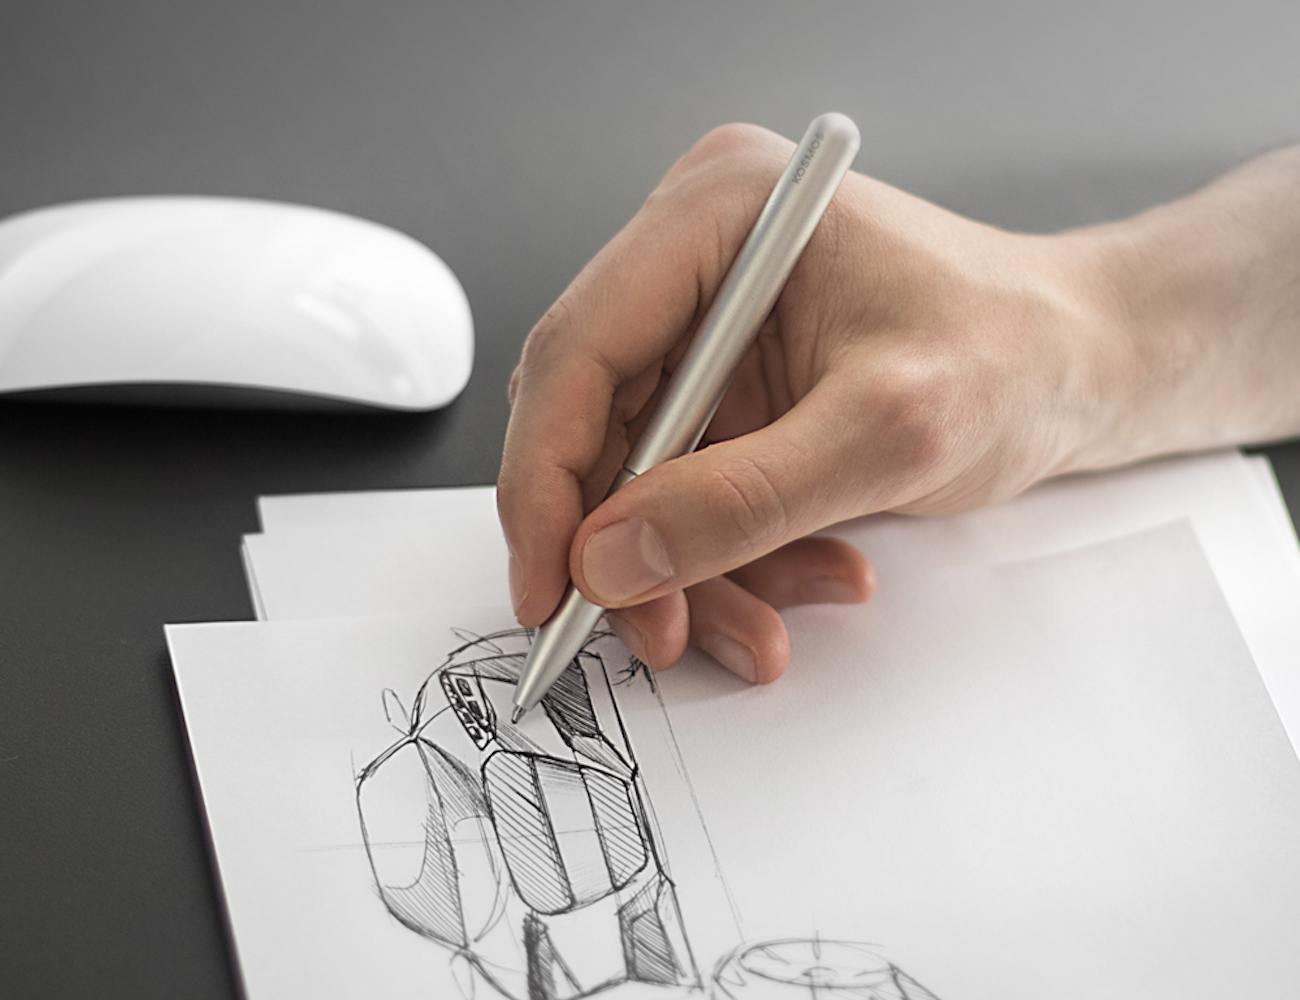 KOSMOS – An Award Winning Pen With The Most Intuitive Design